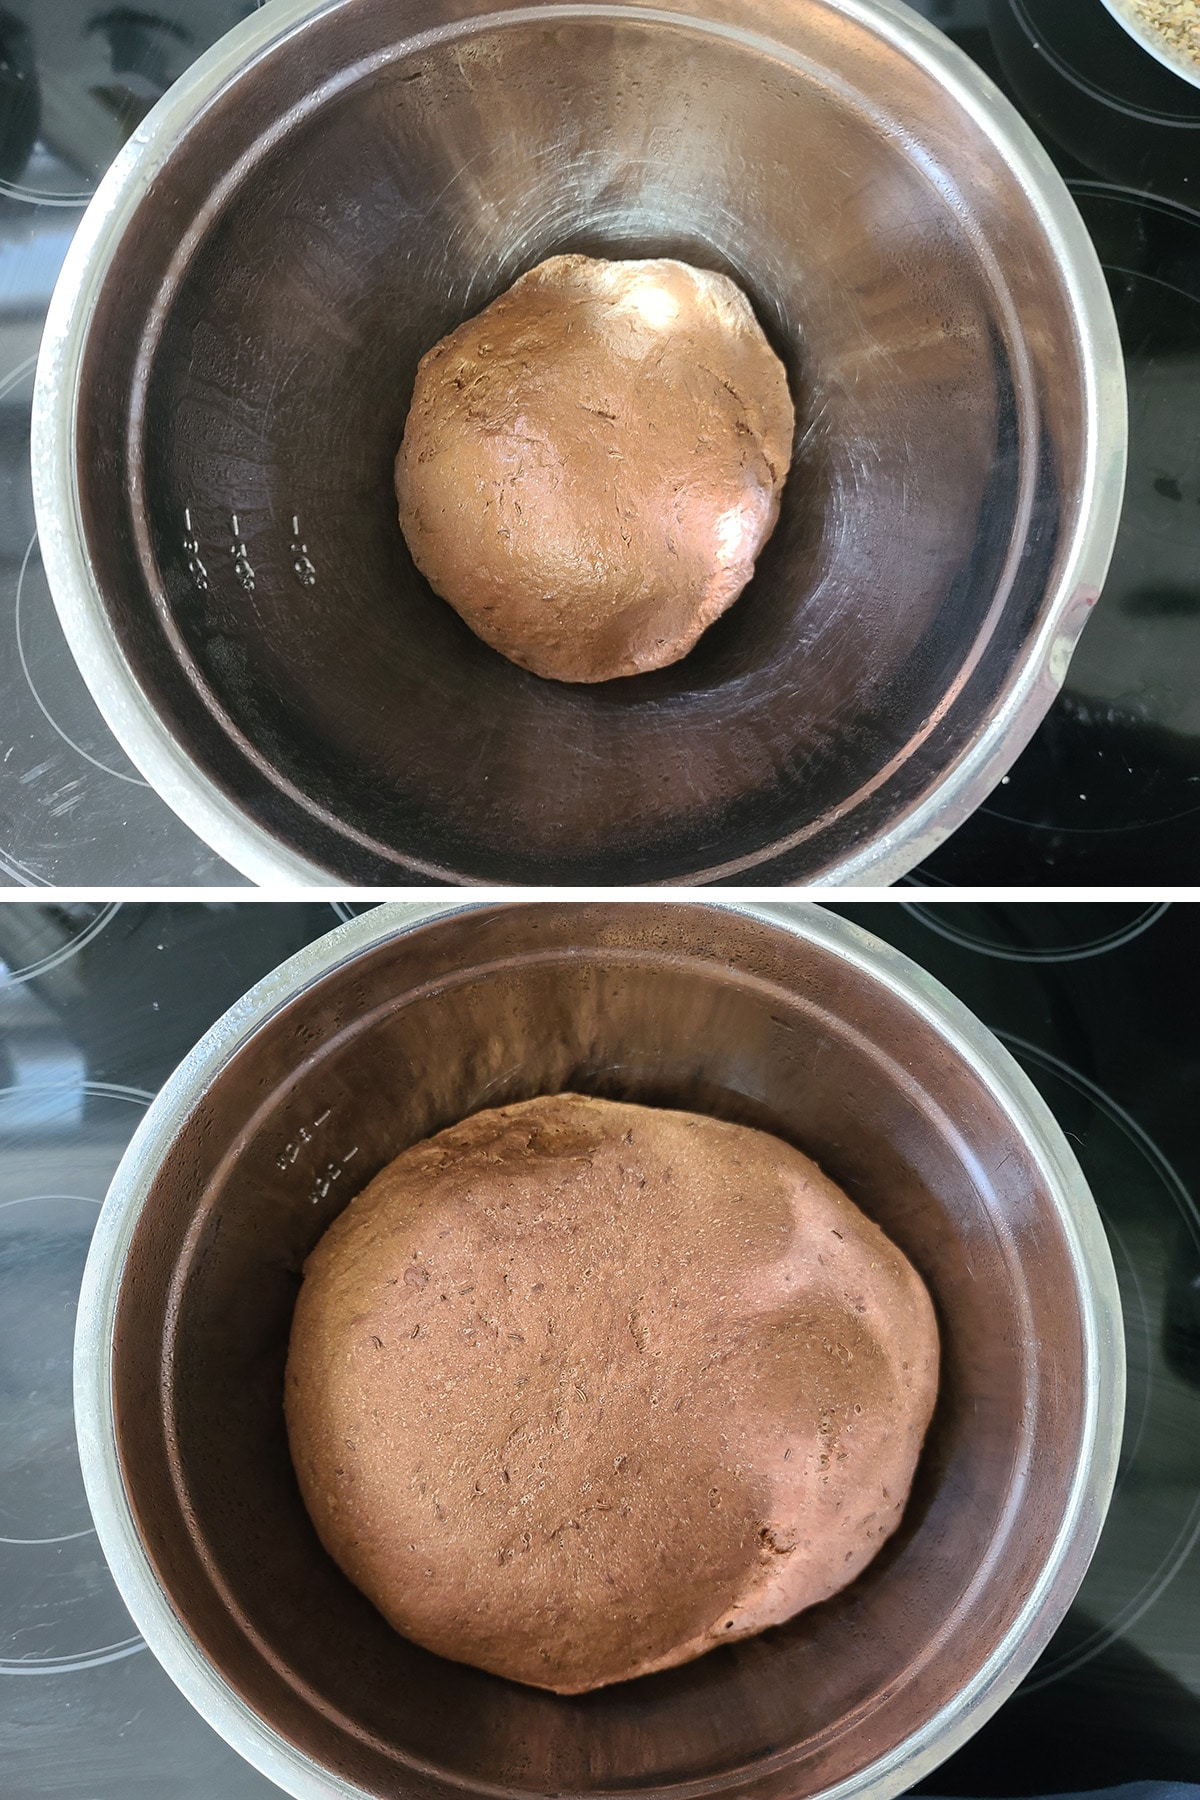 A two part image showing the rich brown dough in a metal bowl, before and after it has risen to twice the original size.